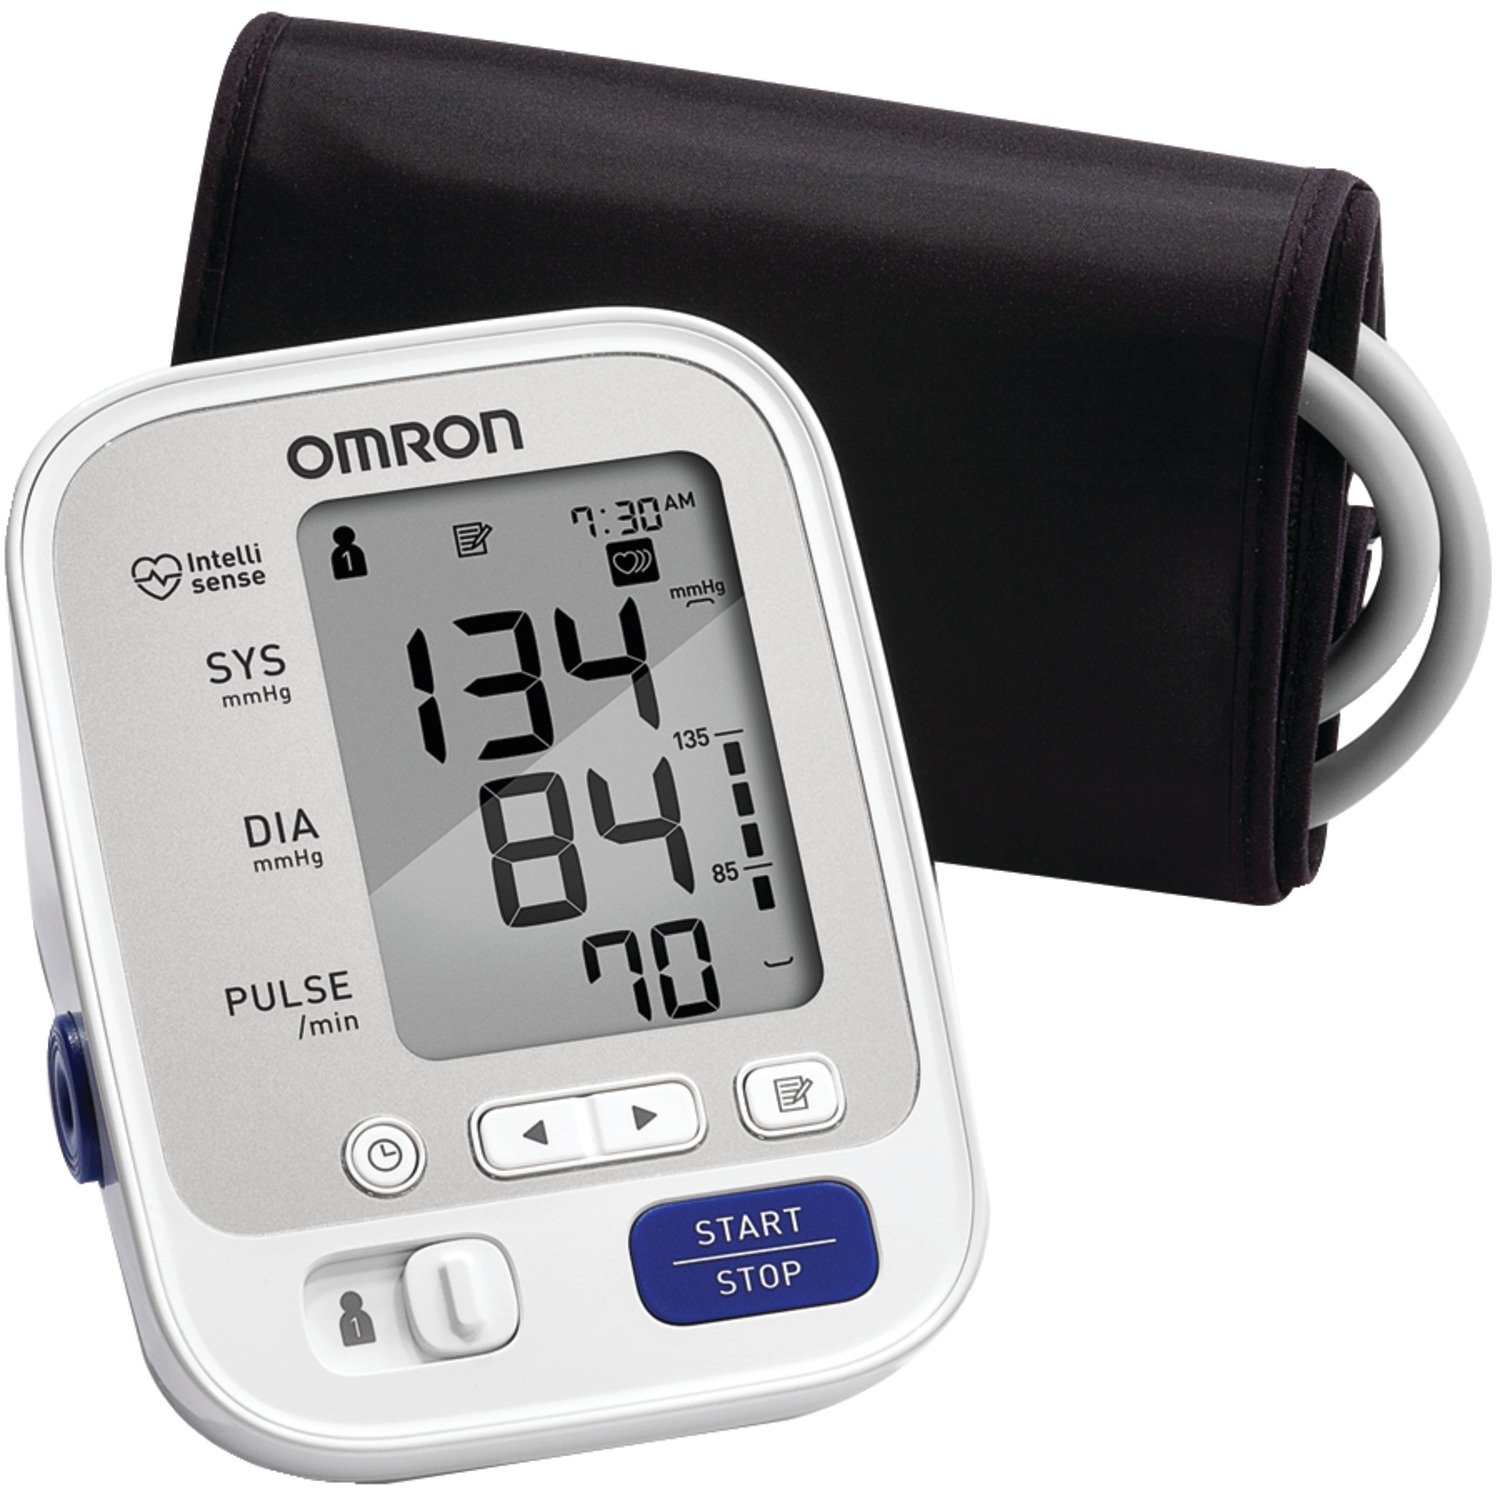 Omron 5 Series Upper Arm Blood Pressure Monitor; 2-User, 100-Reading Memory, Soft Wide-Range Cuff, #1 Dr. Recommended by Omron by Omron